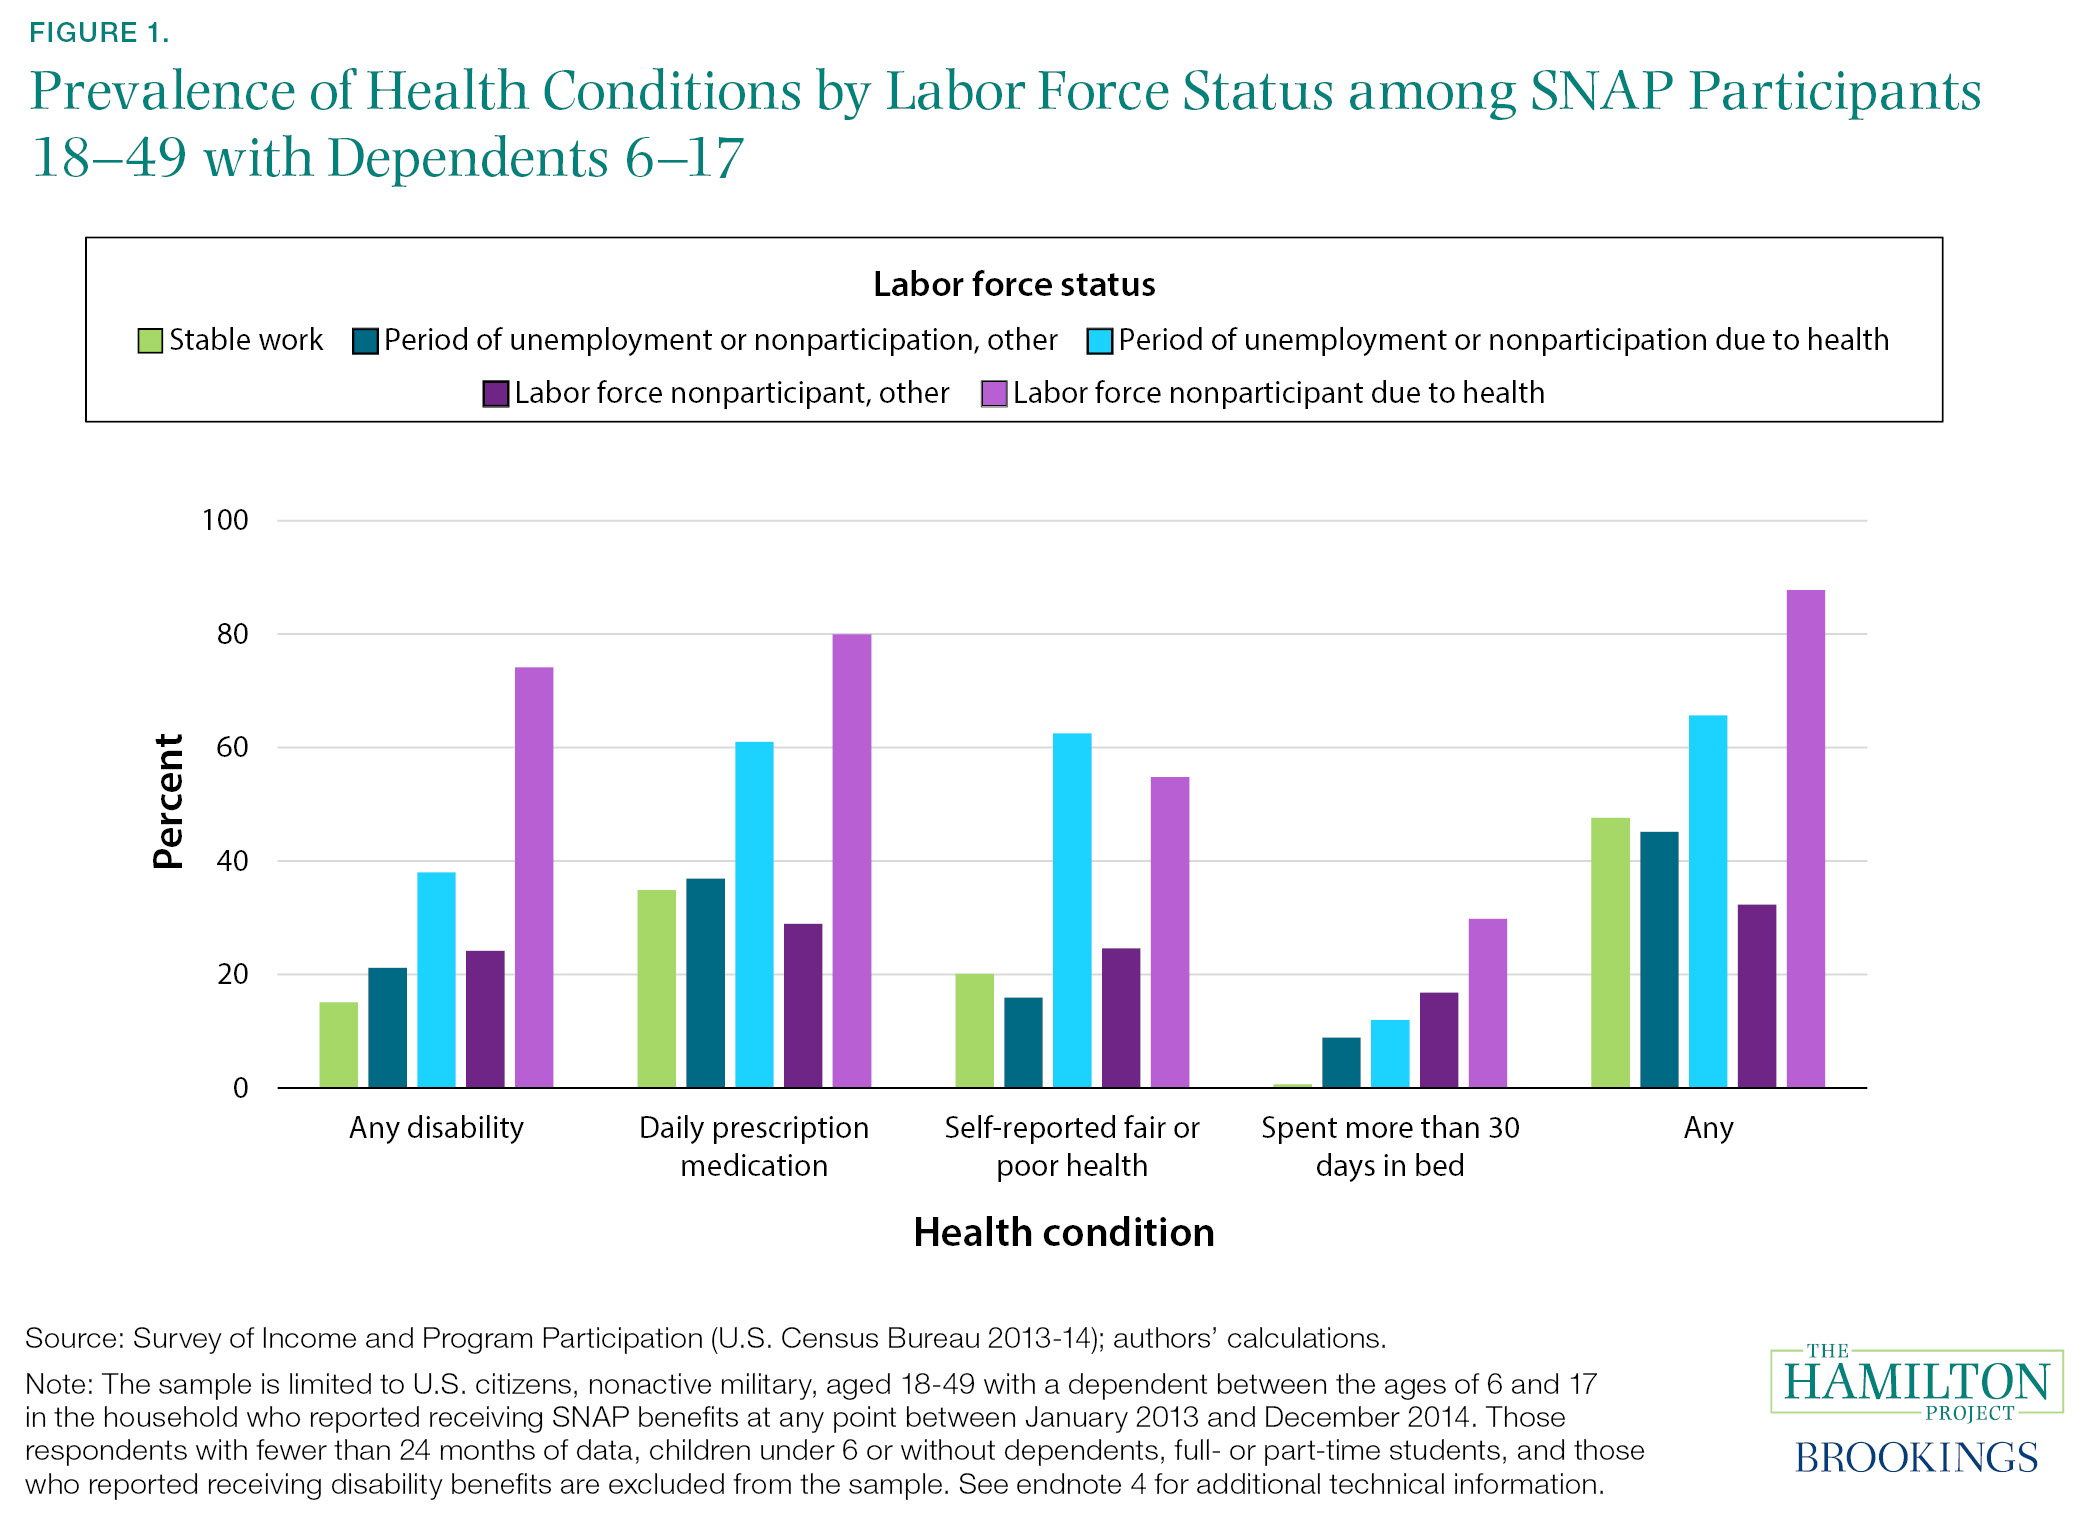 Figure 1. Prevalence of Health Conditions by Labor Force Status among SNAP Participants 18–49 with Dependents 6–17